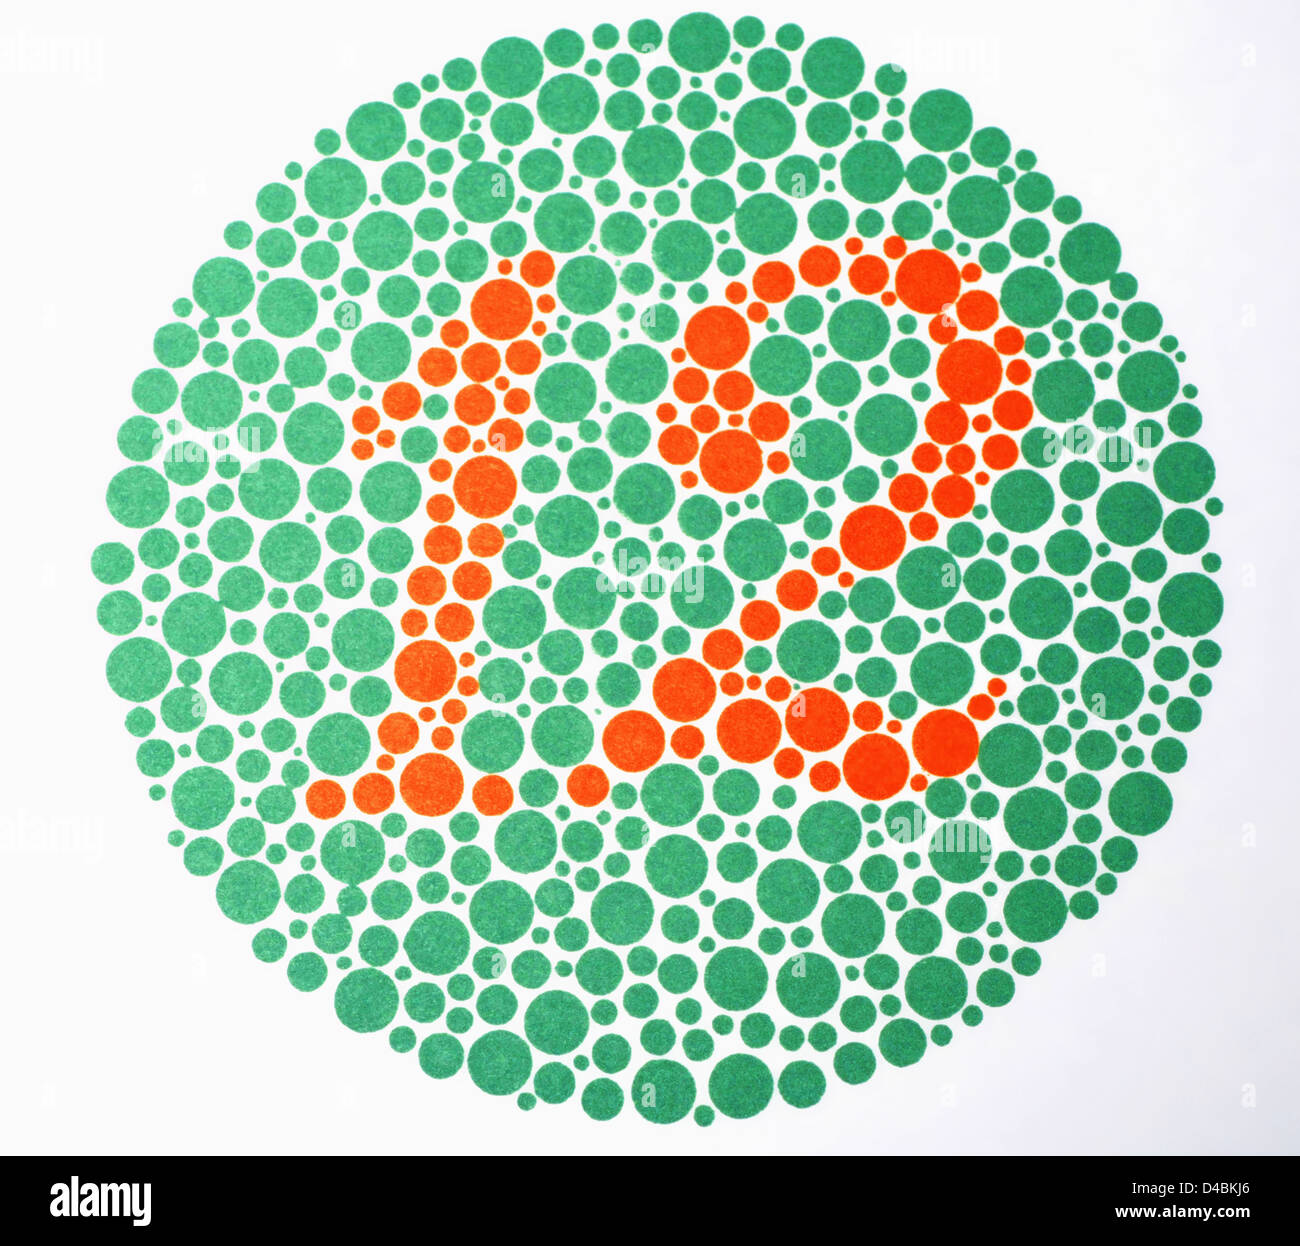 Red Green Blindness Stock Photos & Red Green Blindness Stock Images ...